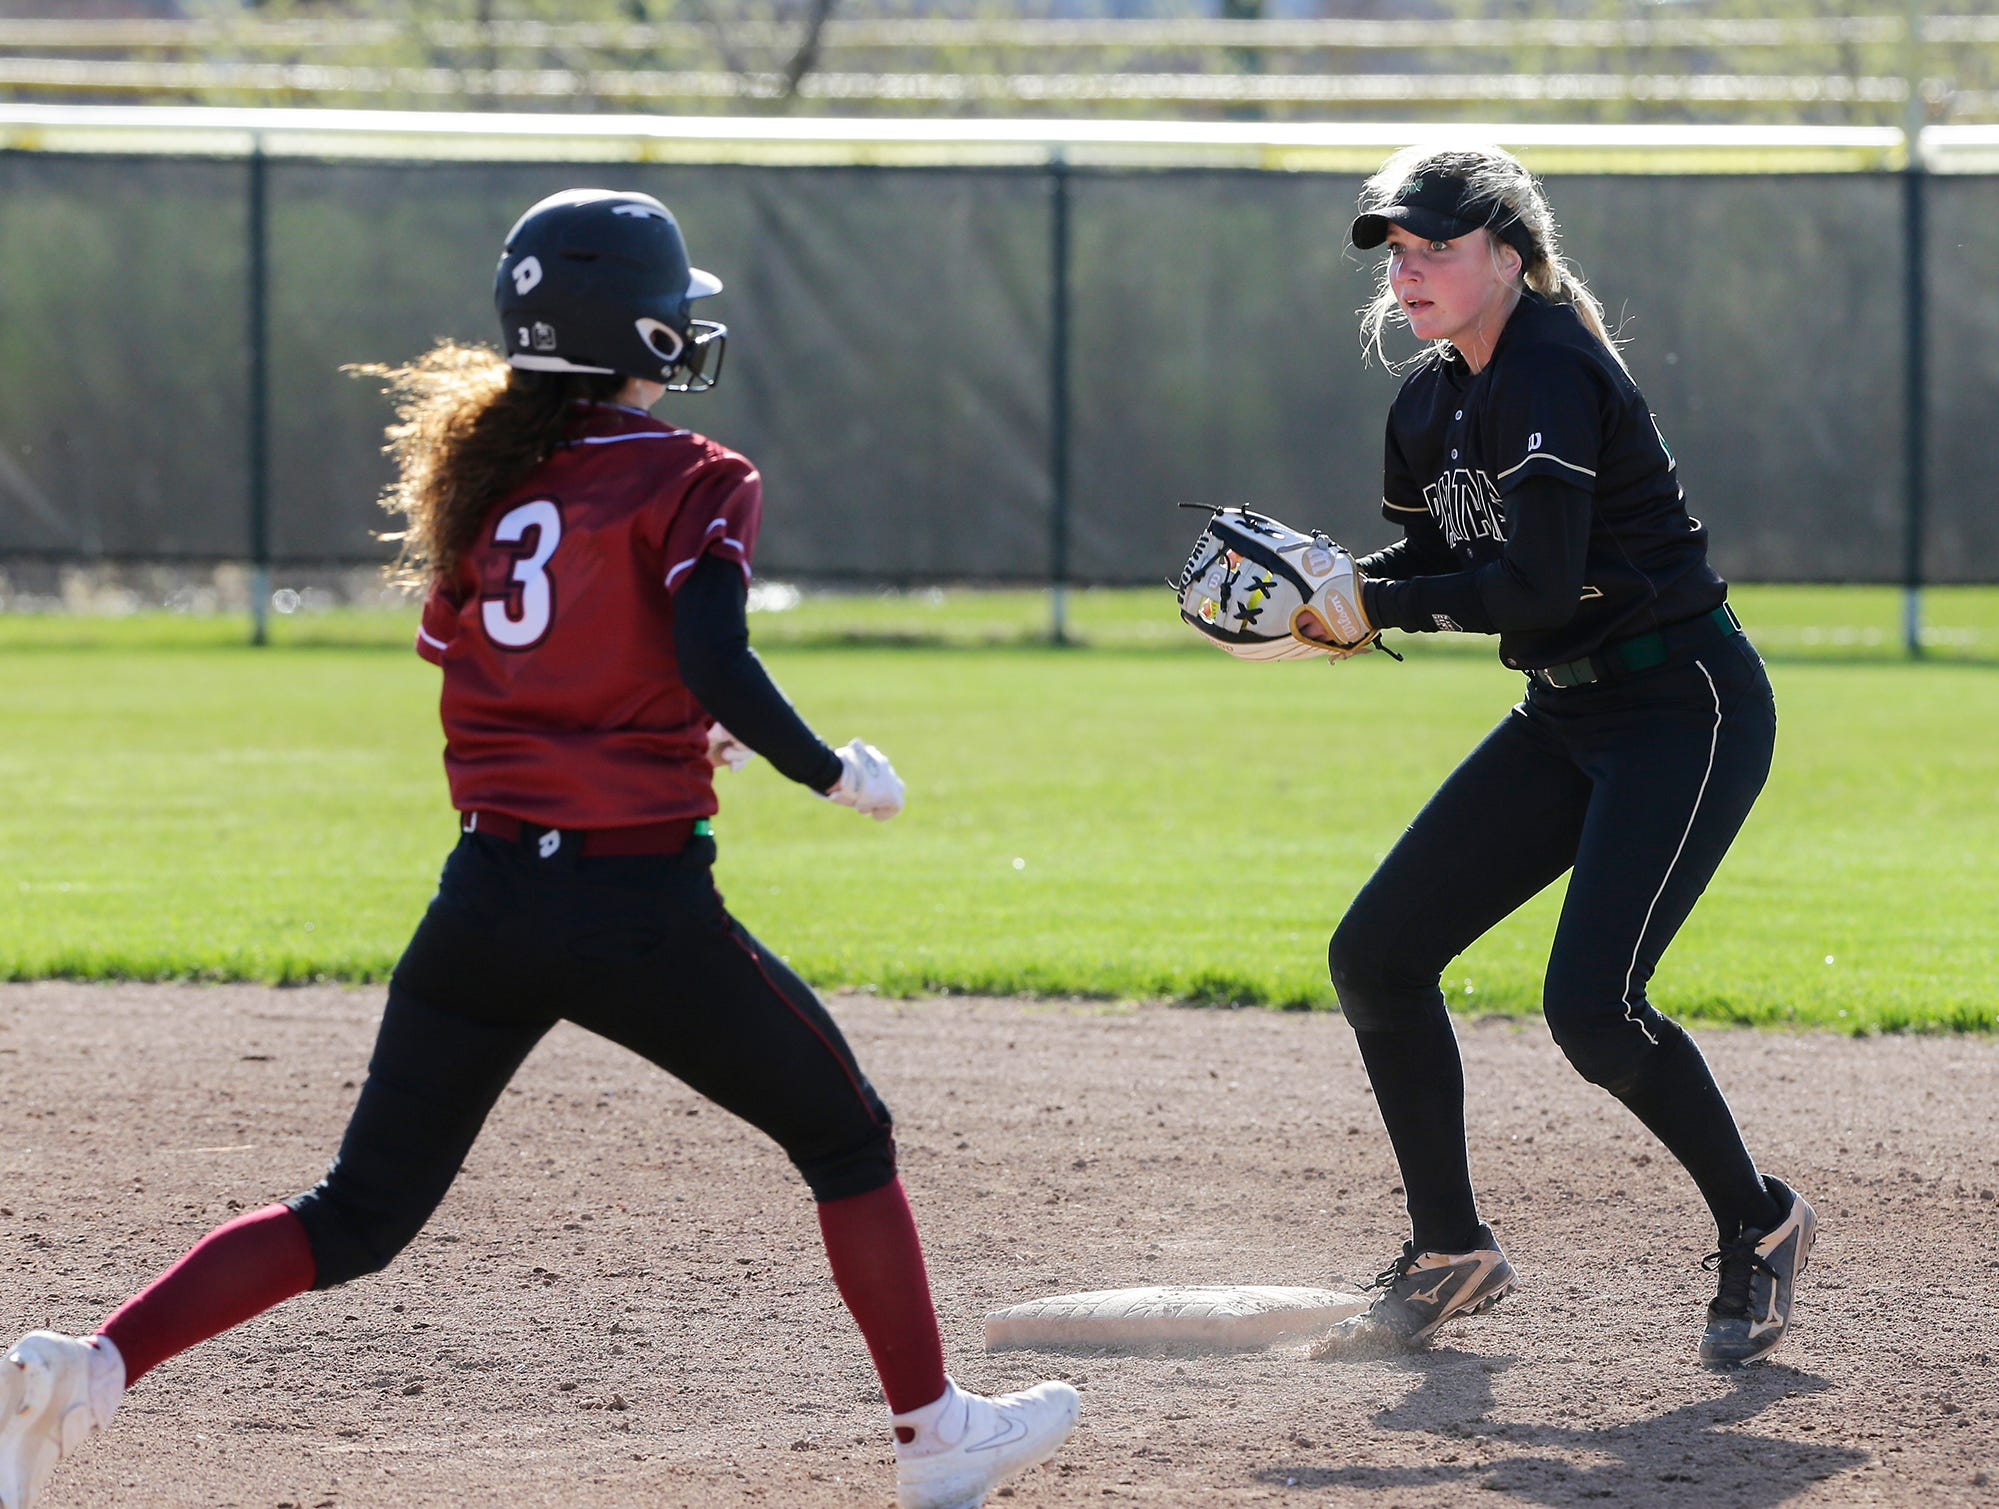 Oshkosh North High School softball's Brooke Ellestad attempts to force out Fond du Lac High School's Brianna Biermann but never touches the base during their game Friday, April 26, 2019 in Fond du Lac, Wis. Doug Raflik/USA TODAY NETWORK-Wisconsin